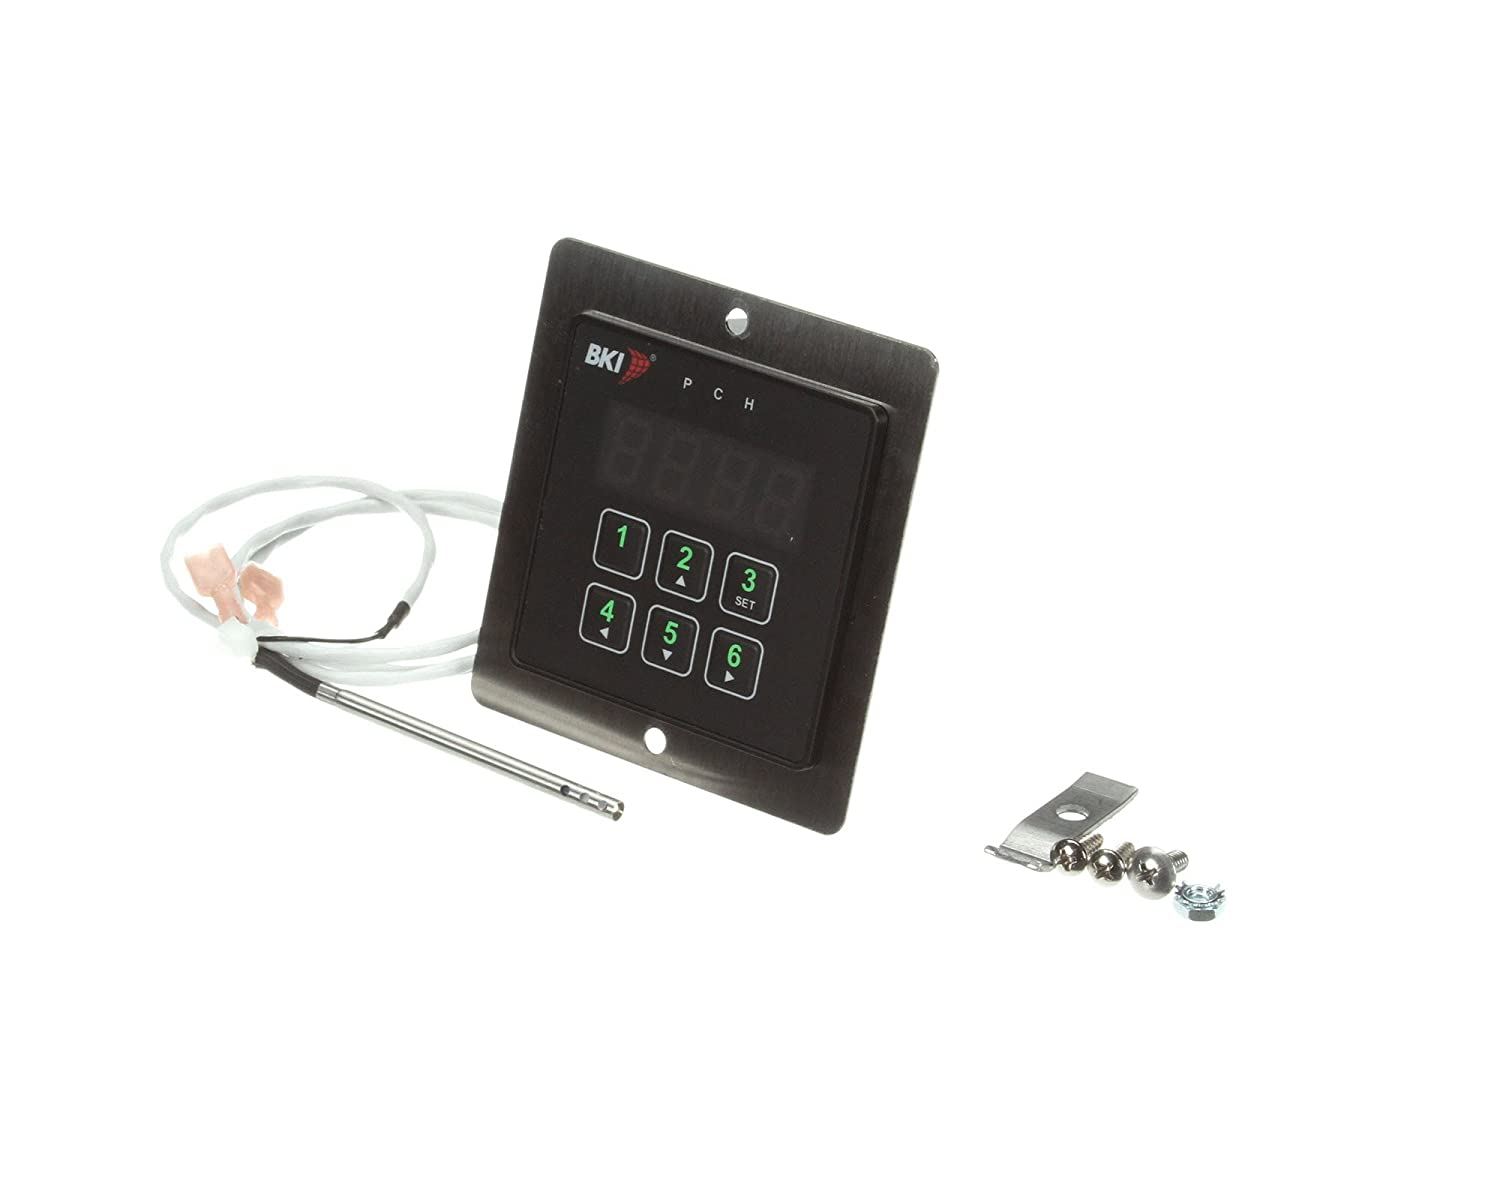 BKI AN5621810S Al sold out. Bki Go-36 Regular discount Assembly Oven Controller